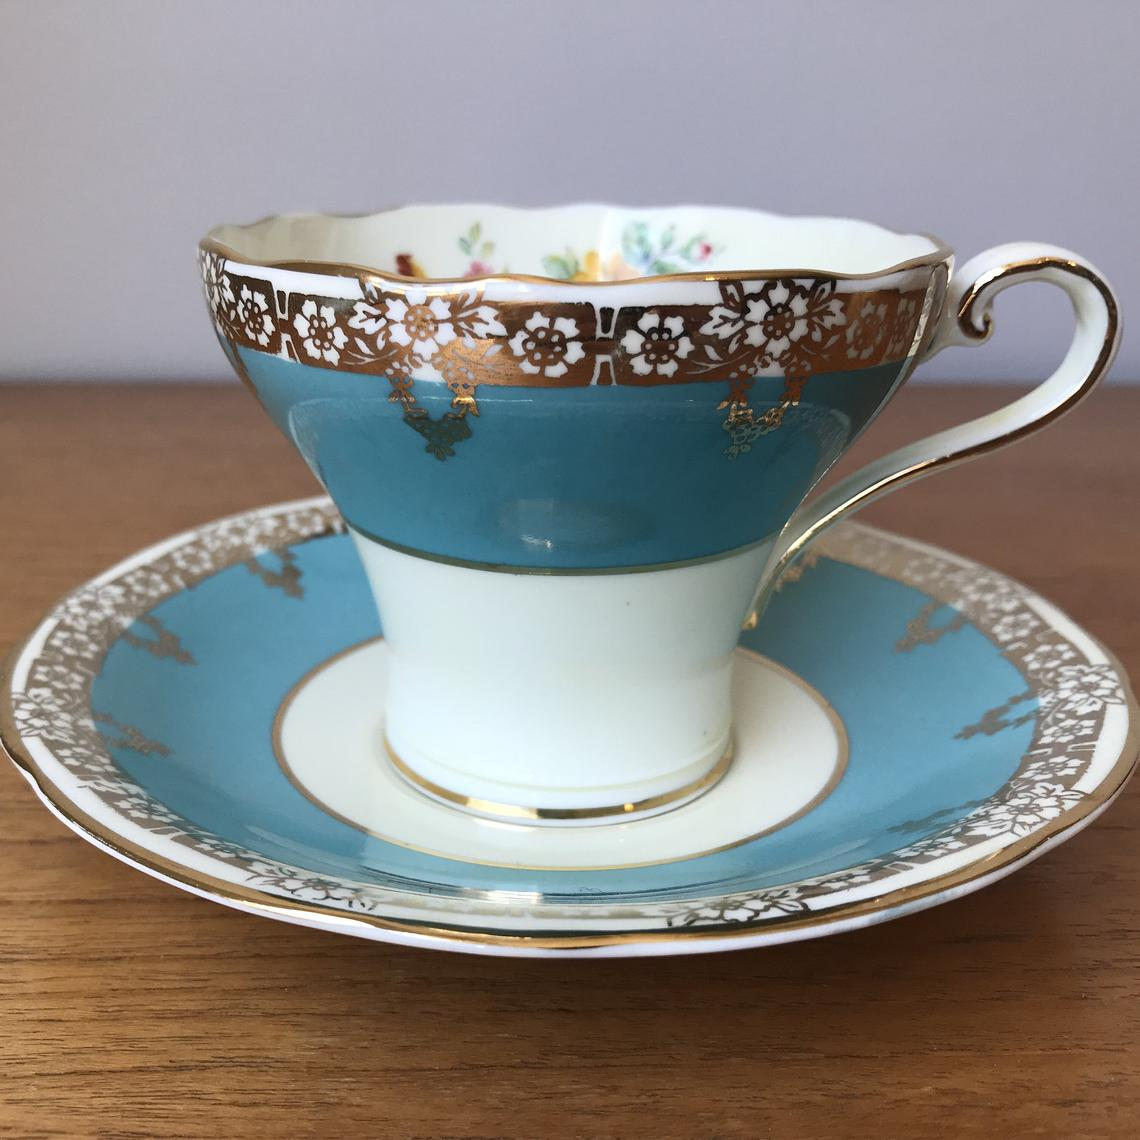 Blue Aynsley Tea Cup and Saucer, Vintage Bone China Floral English Teacup and Saucer, Corset Shape